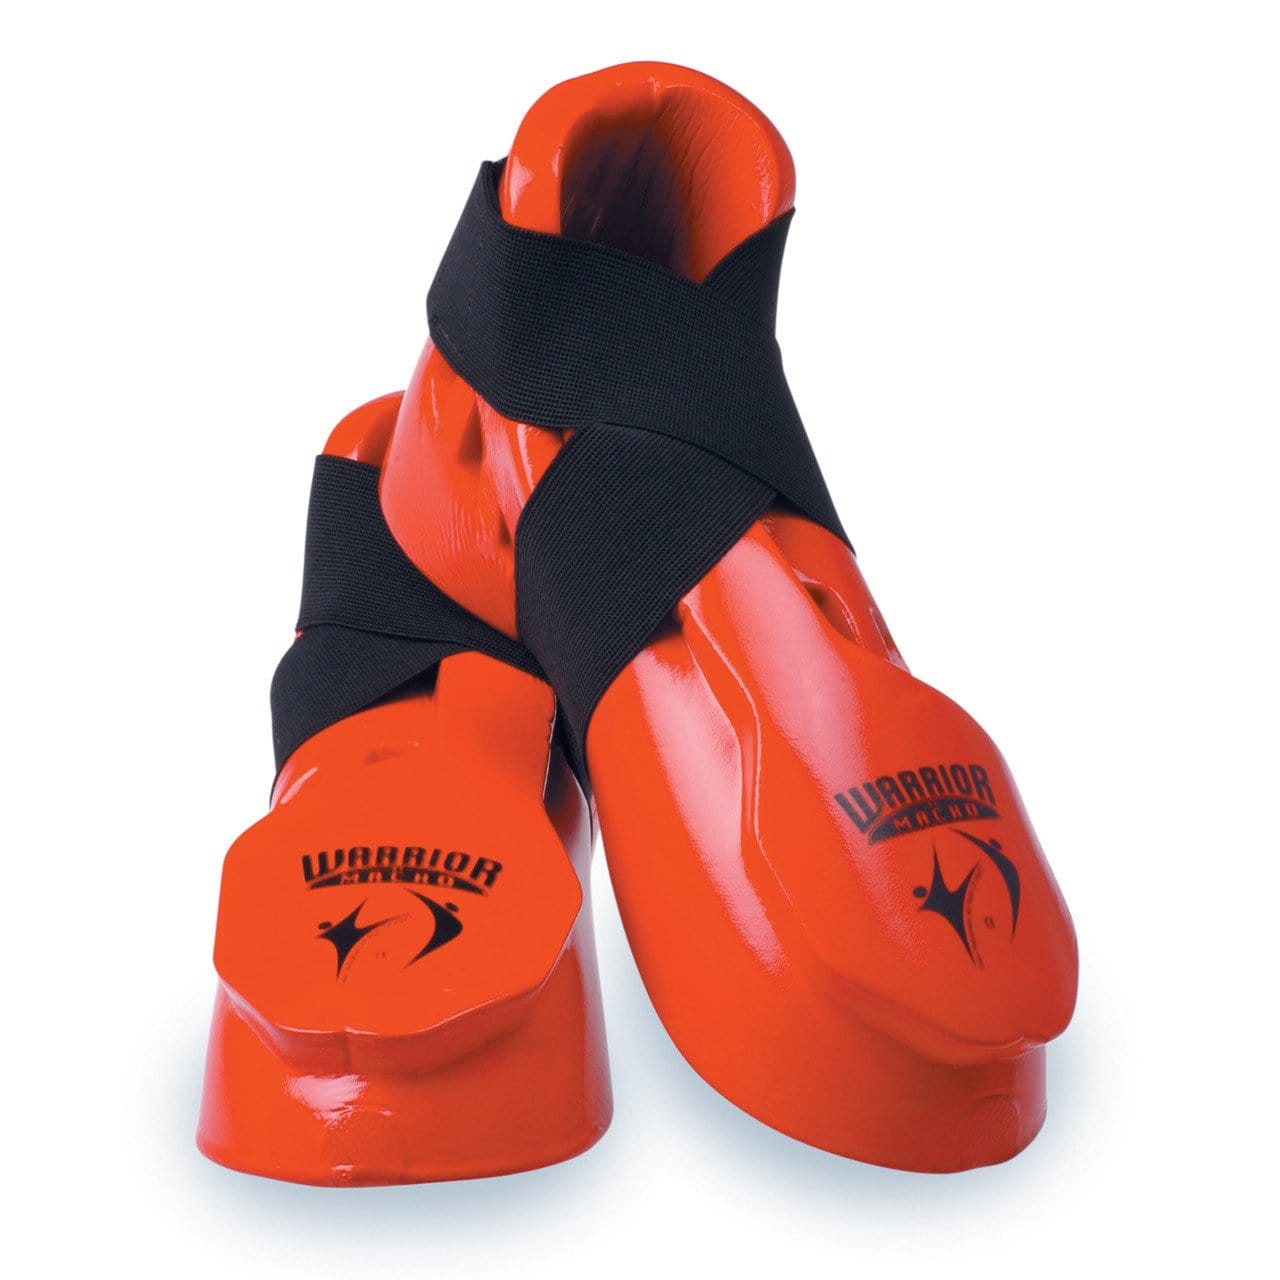 red Macho Warrior Sparring Boots Kicks